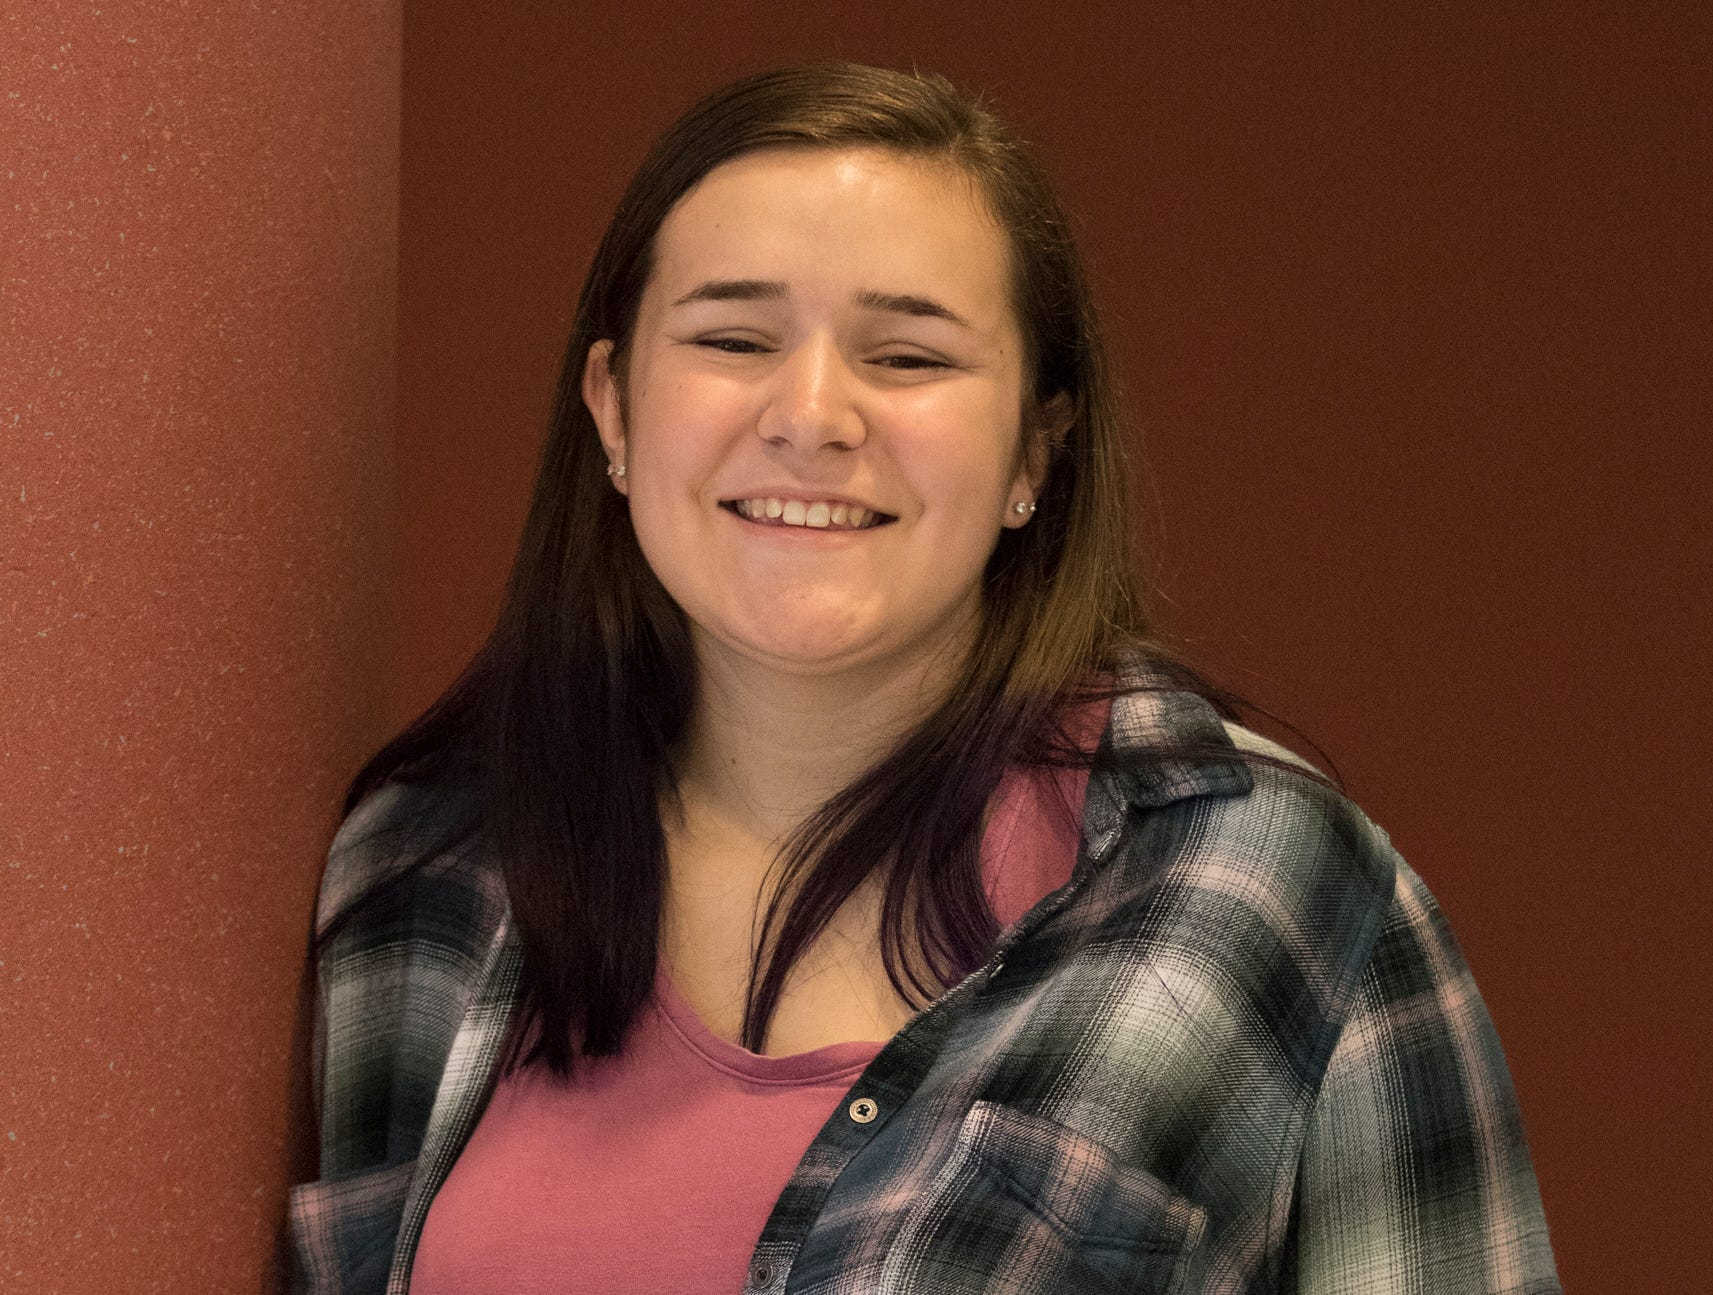 Taylor Arledge, 16, Mud-Crew. Project: Health, The Truth about Tobacco